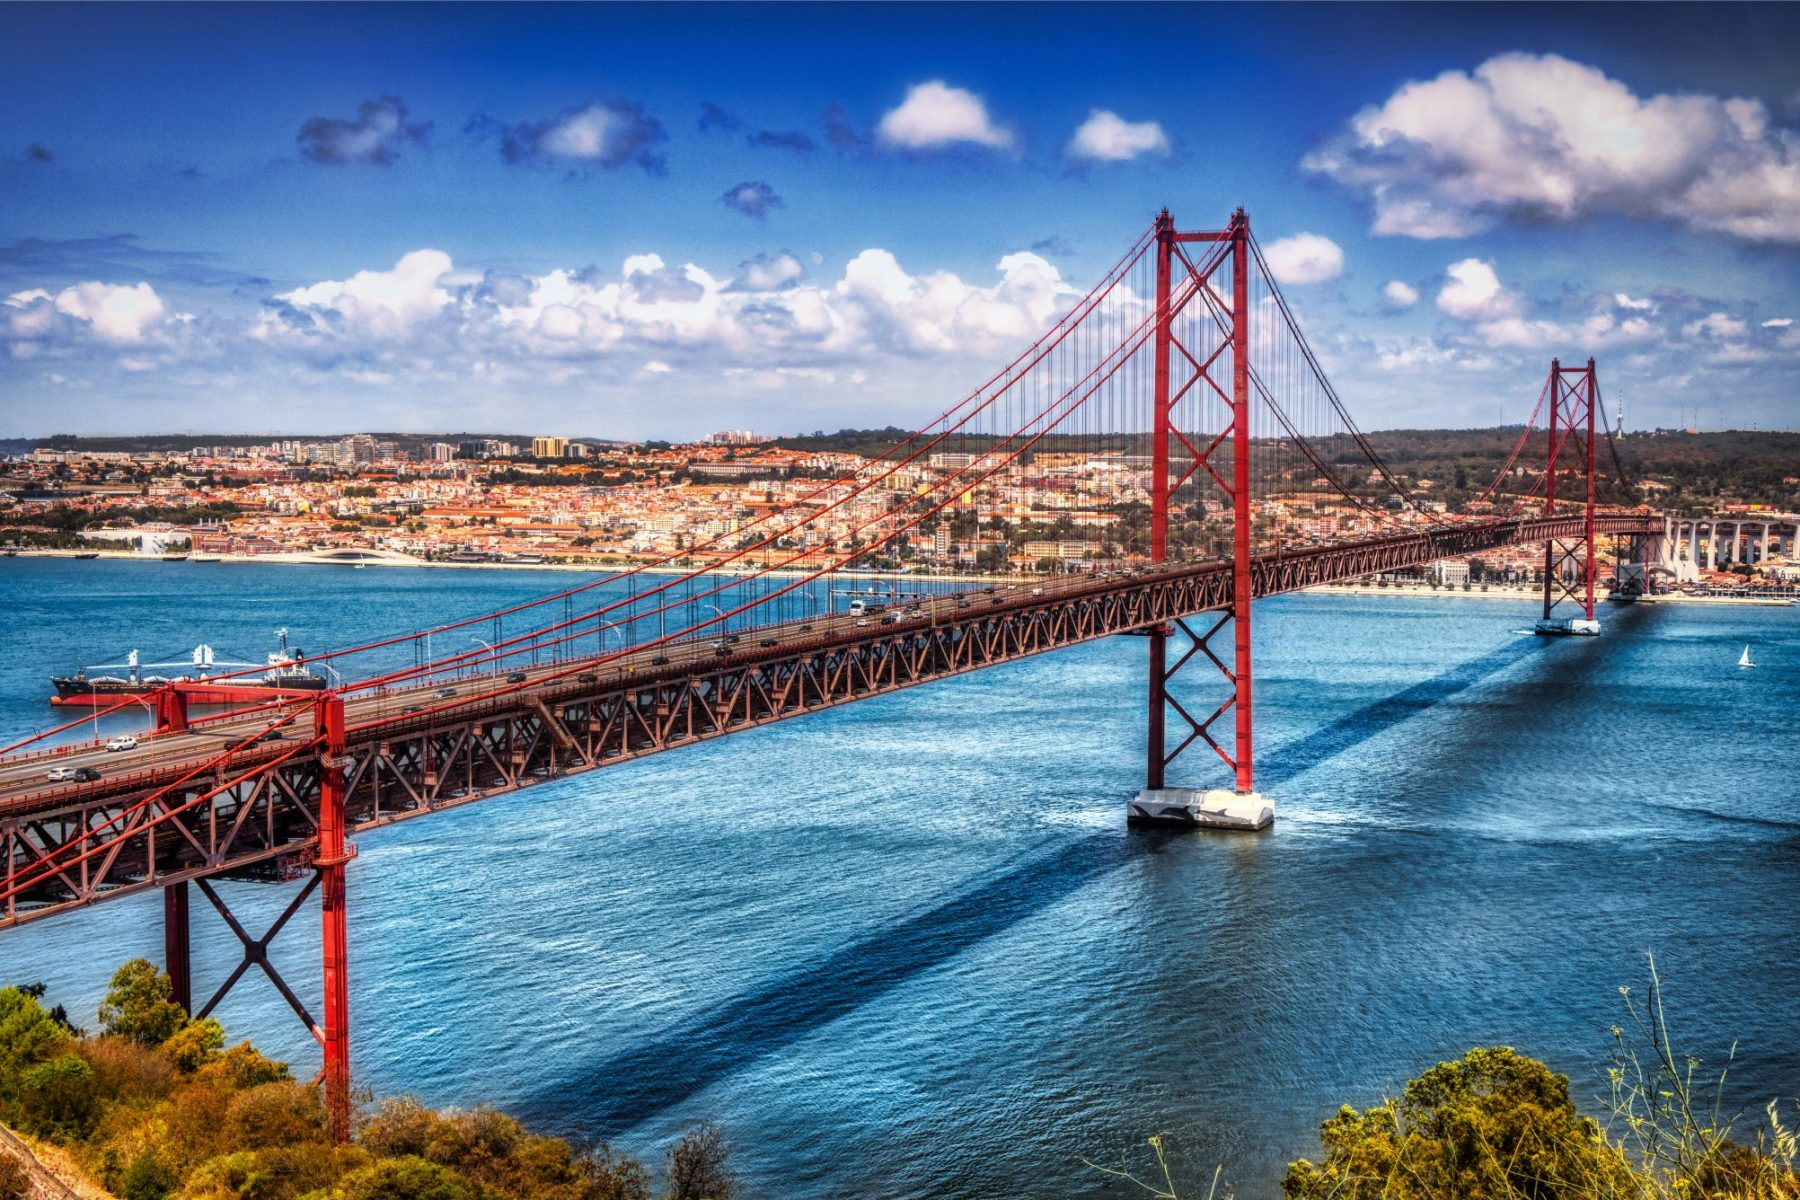 25 De Abril Bridge by Micah Offman